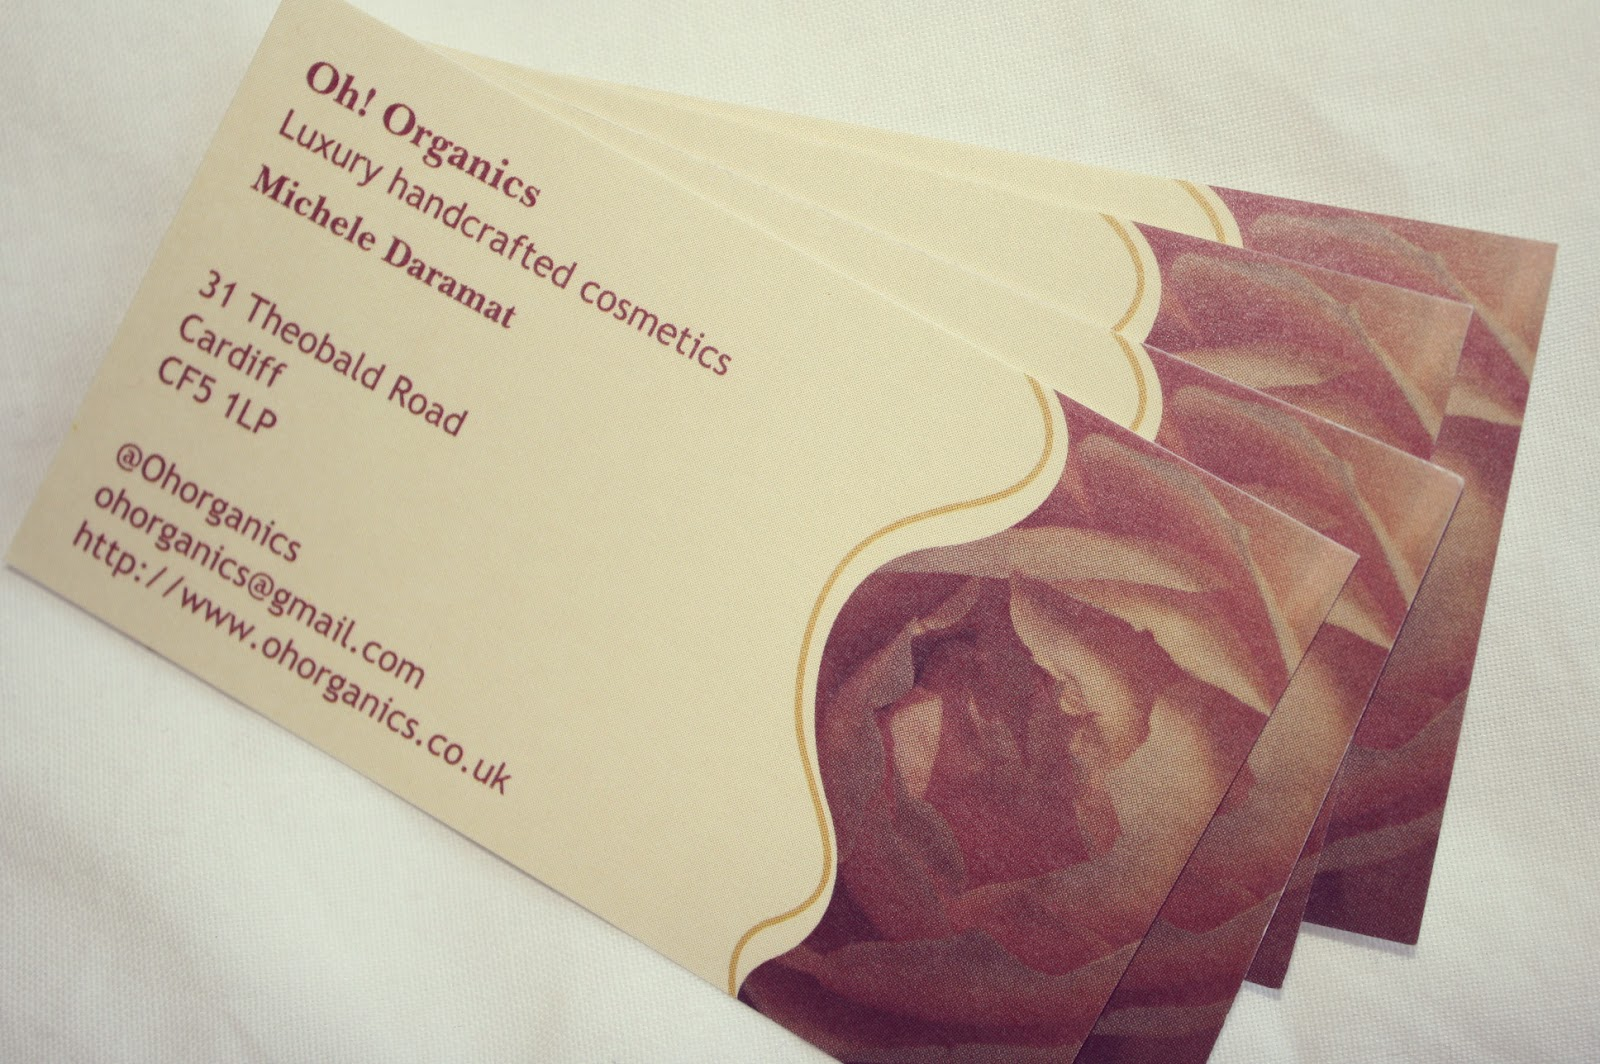 Oh! Organics business cards